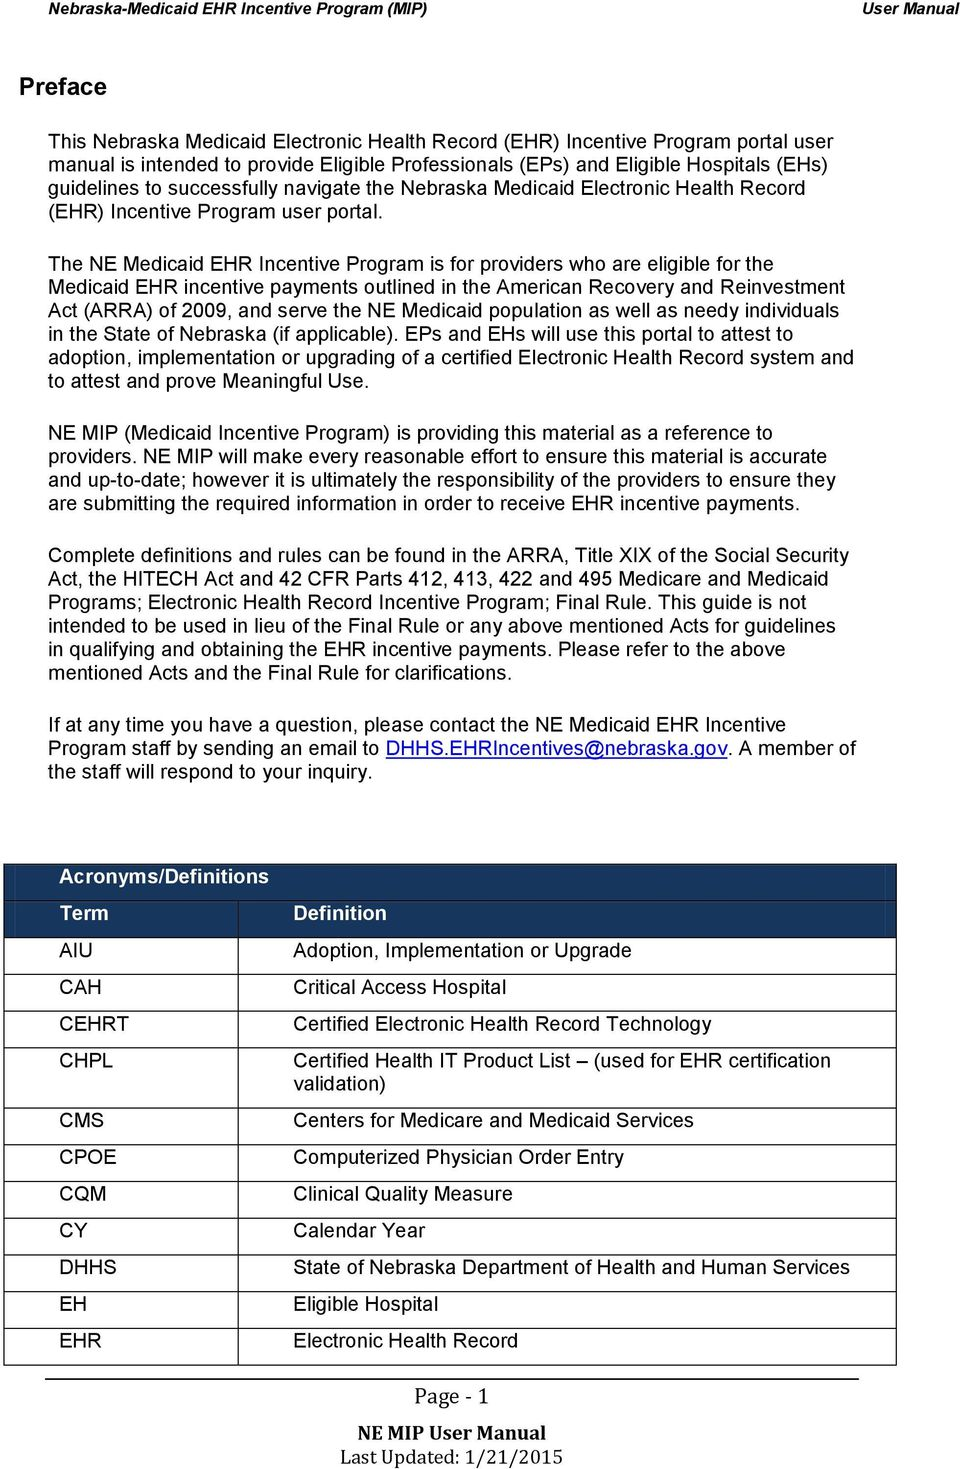 The NE Medicaid EHR Incentive Prgram is fr prviders wh are eligible fr the Medicaid EHR incentive payments utlined in the American Recvery and Reinvestment Act (ARRA) f 2009, and serve the NE